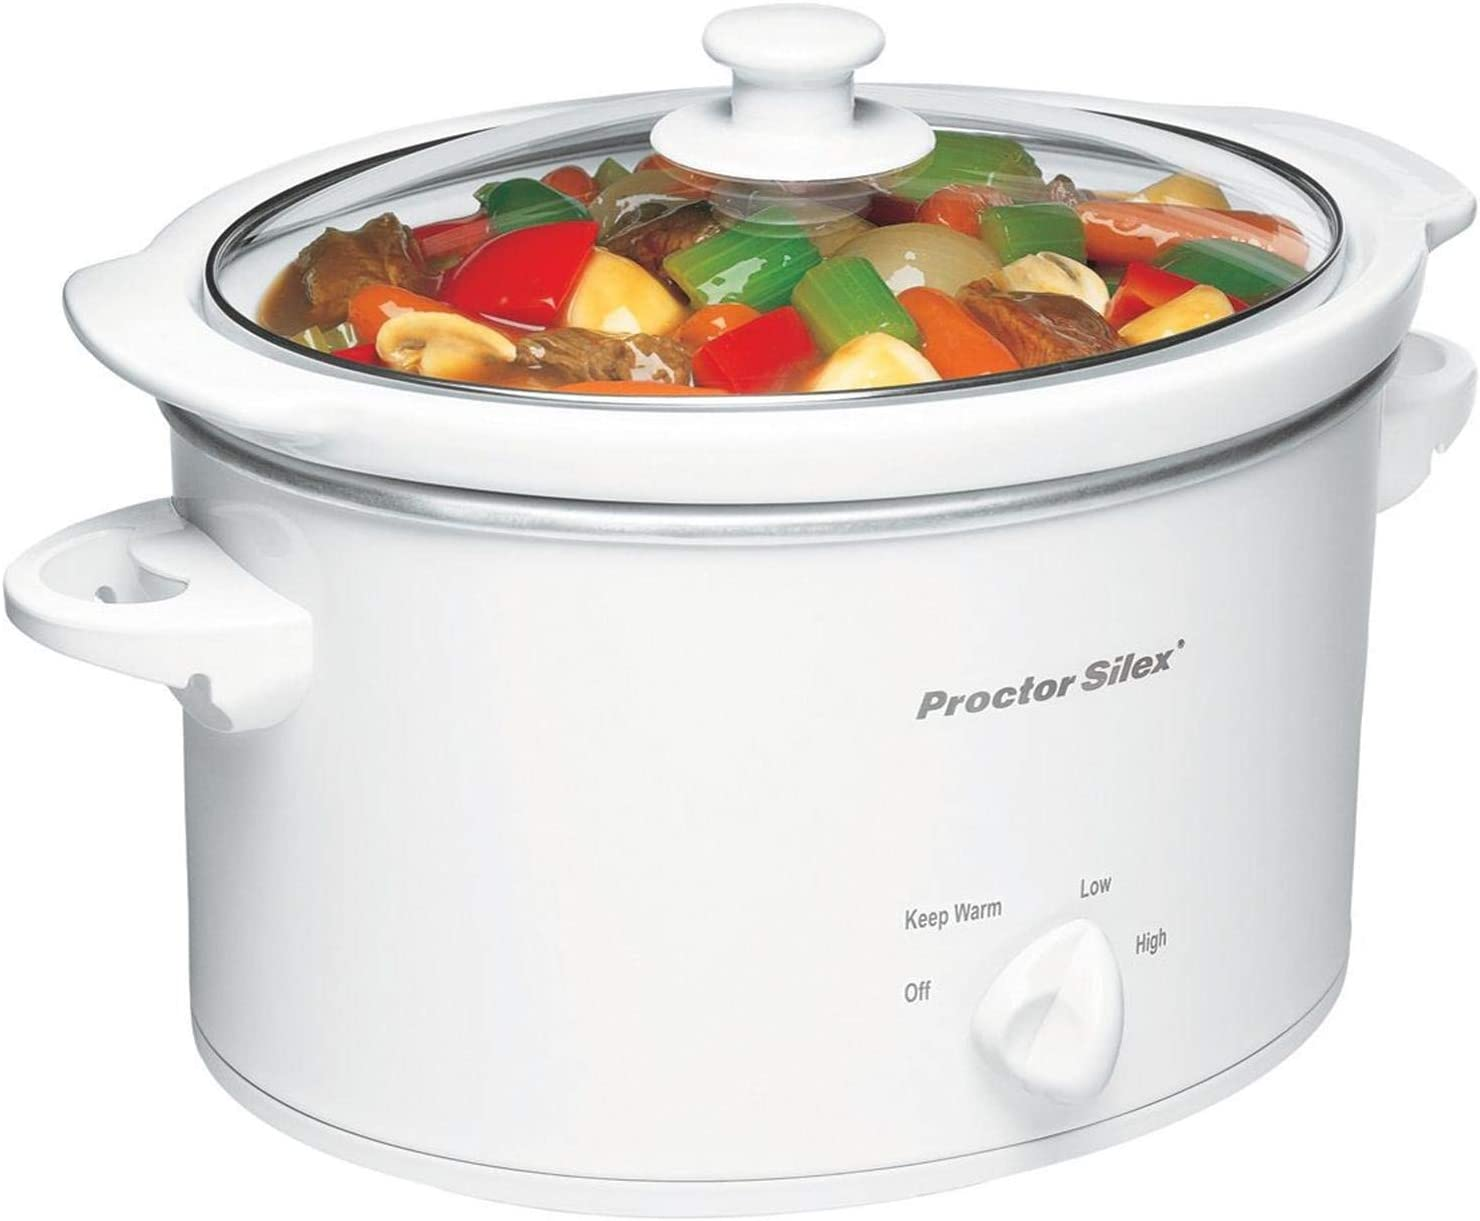 Proctor Silex 33275Y 33275 Oval Slow Cooker 3 quart White (Renewed)